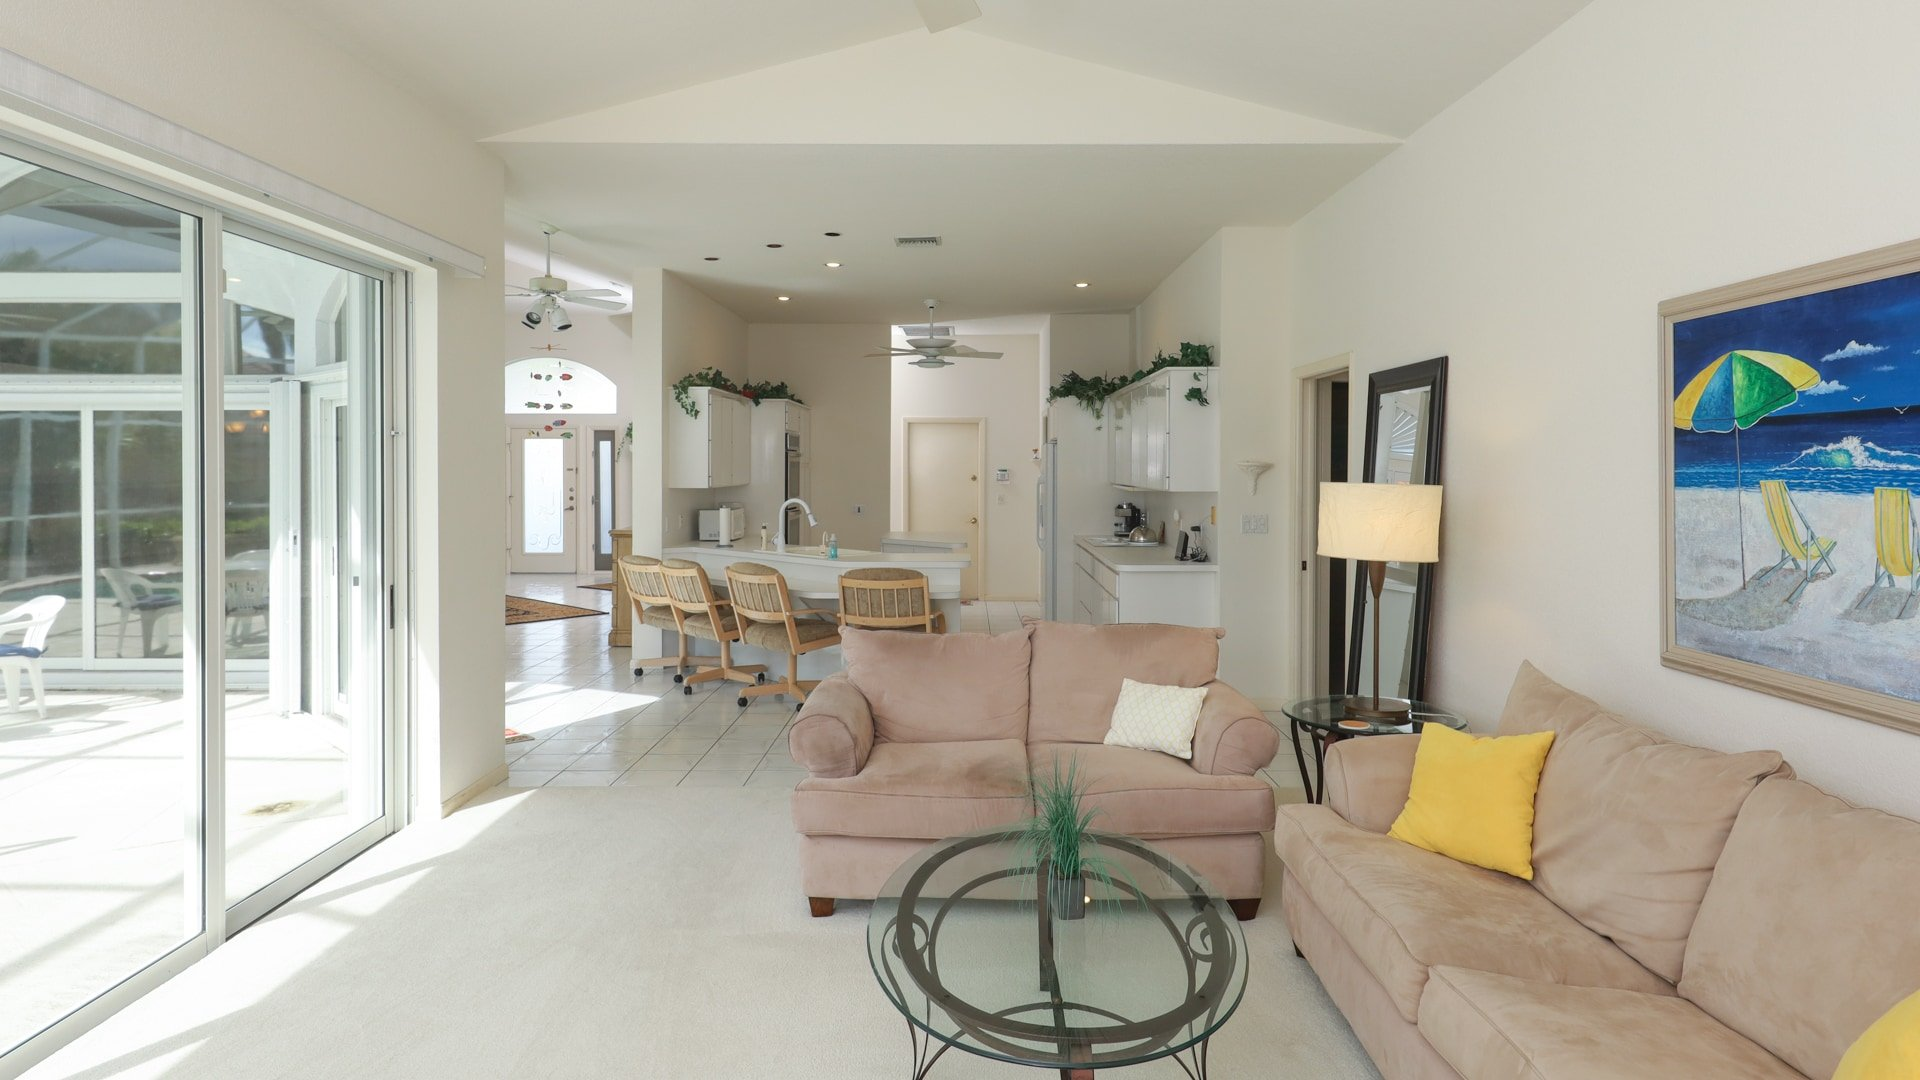 3836 Paola Dr-212765